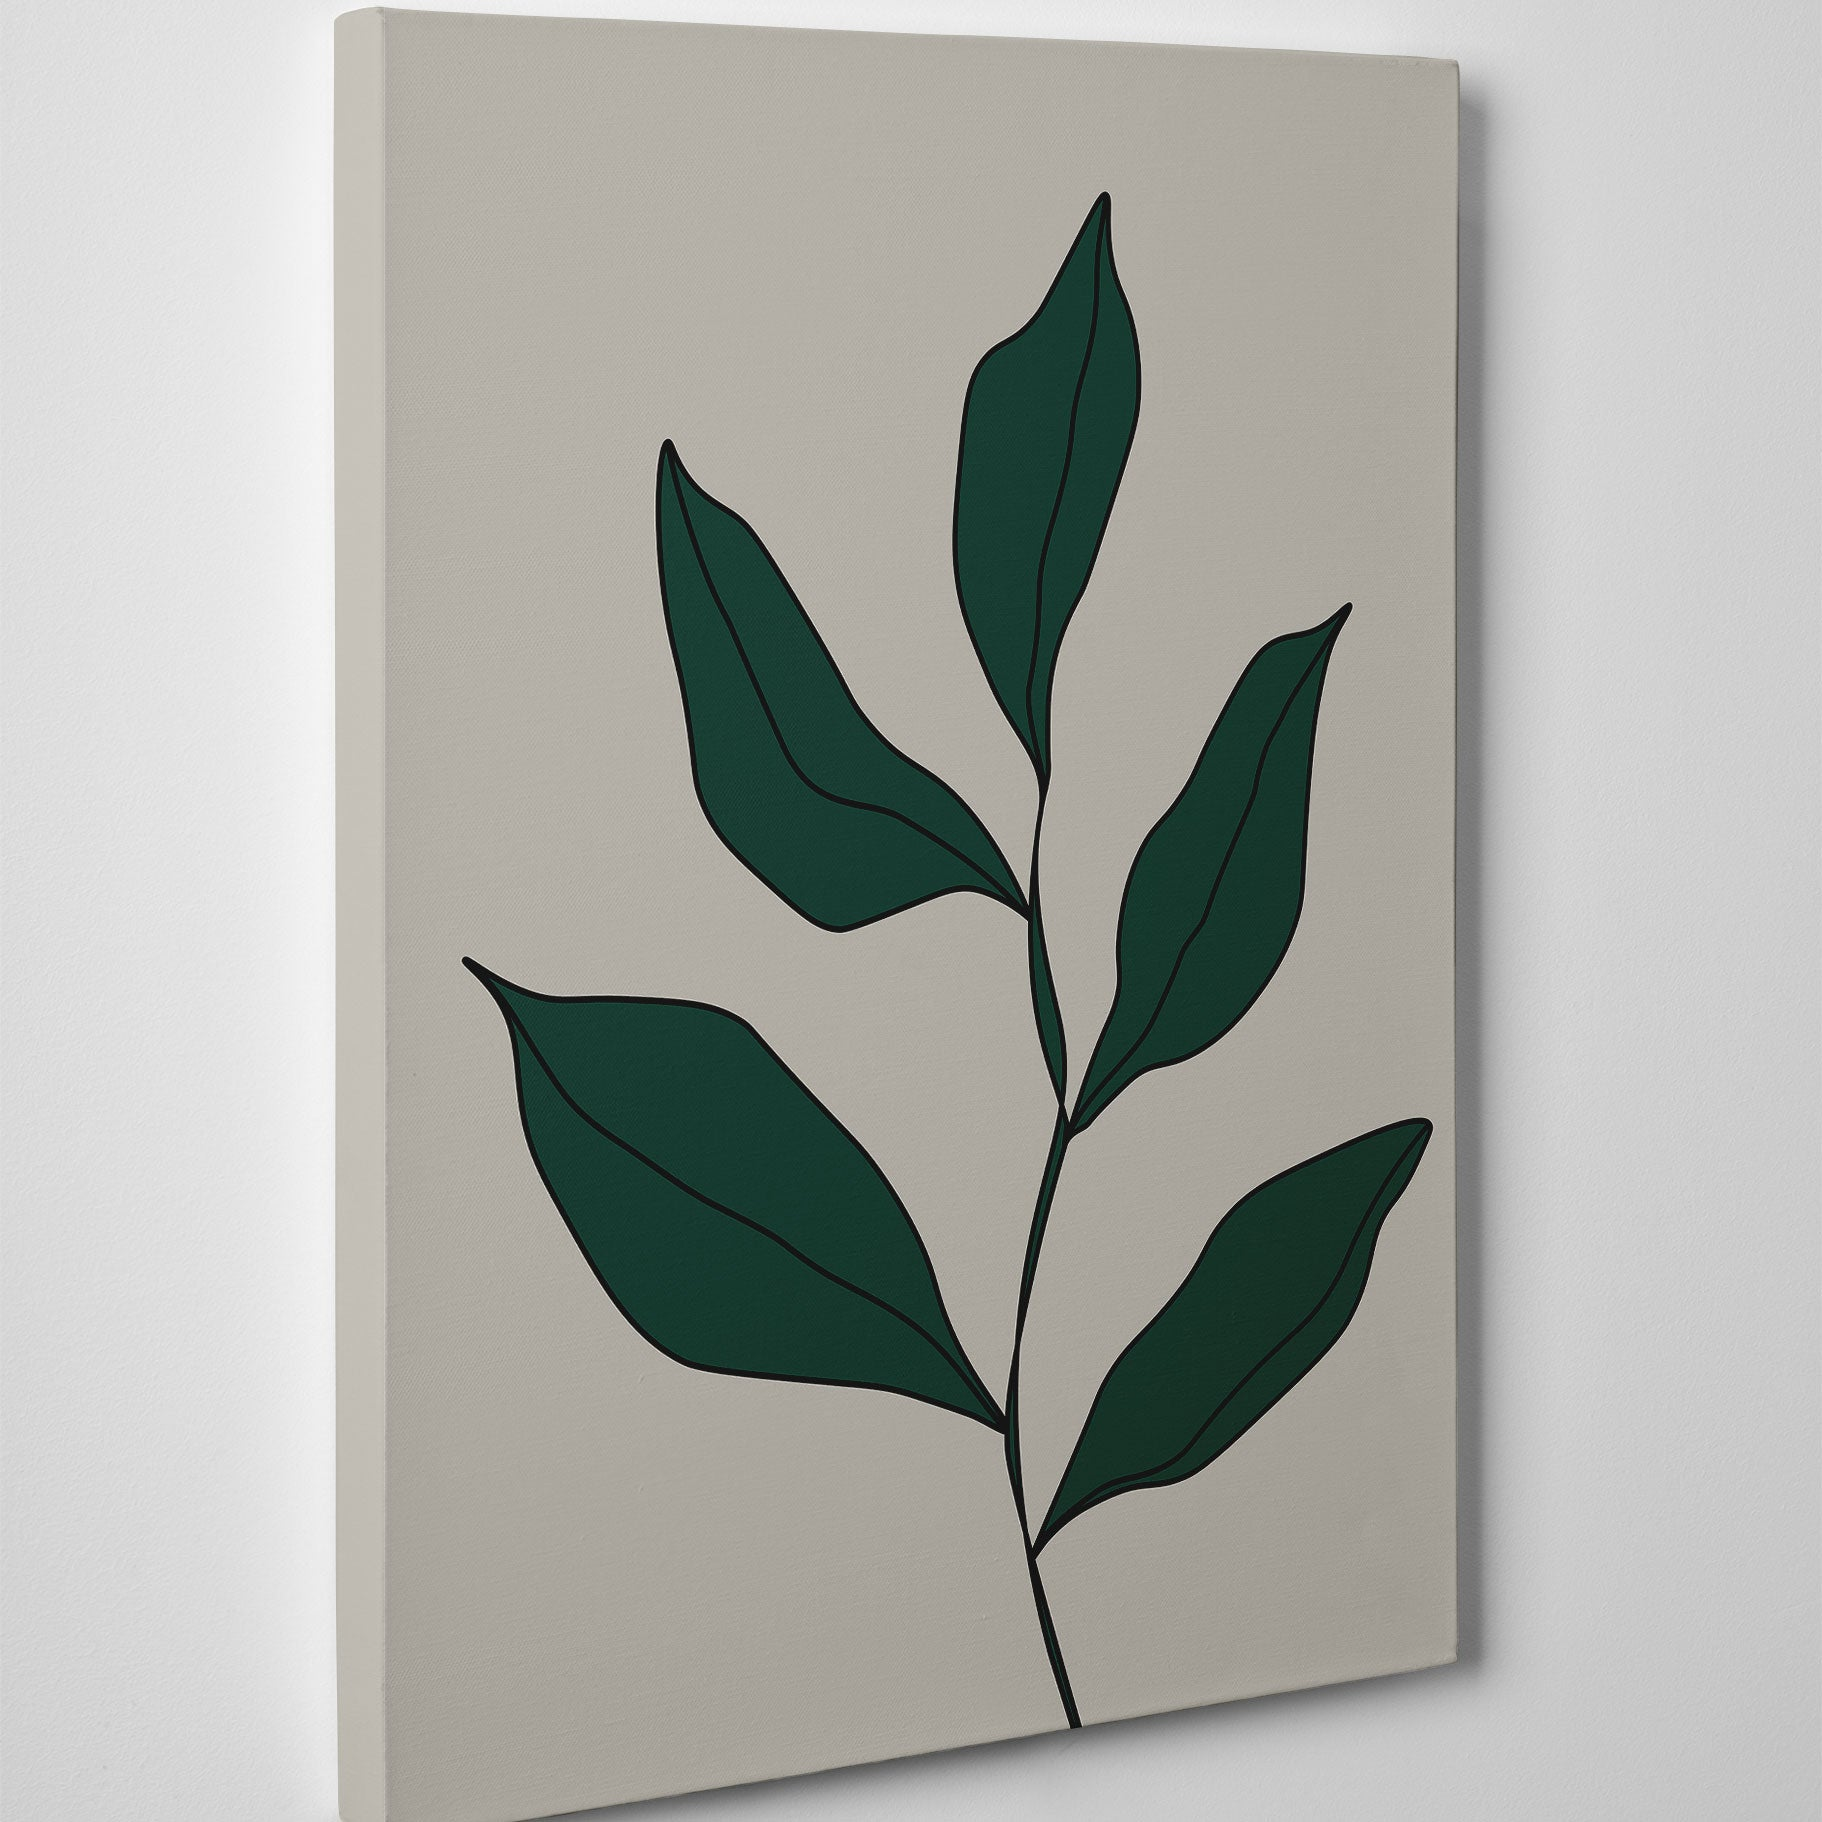 Abstract canvas print with green leaves on grey background - side view